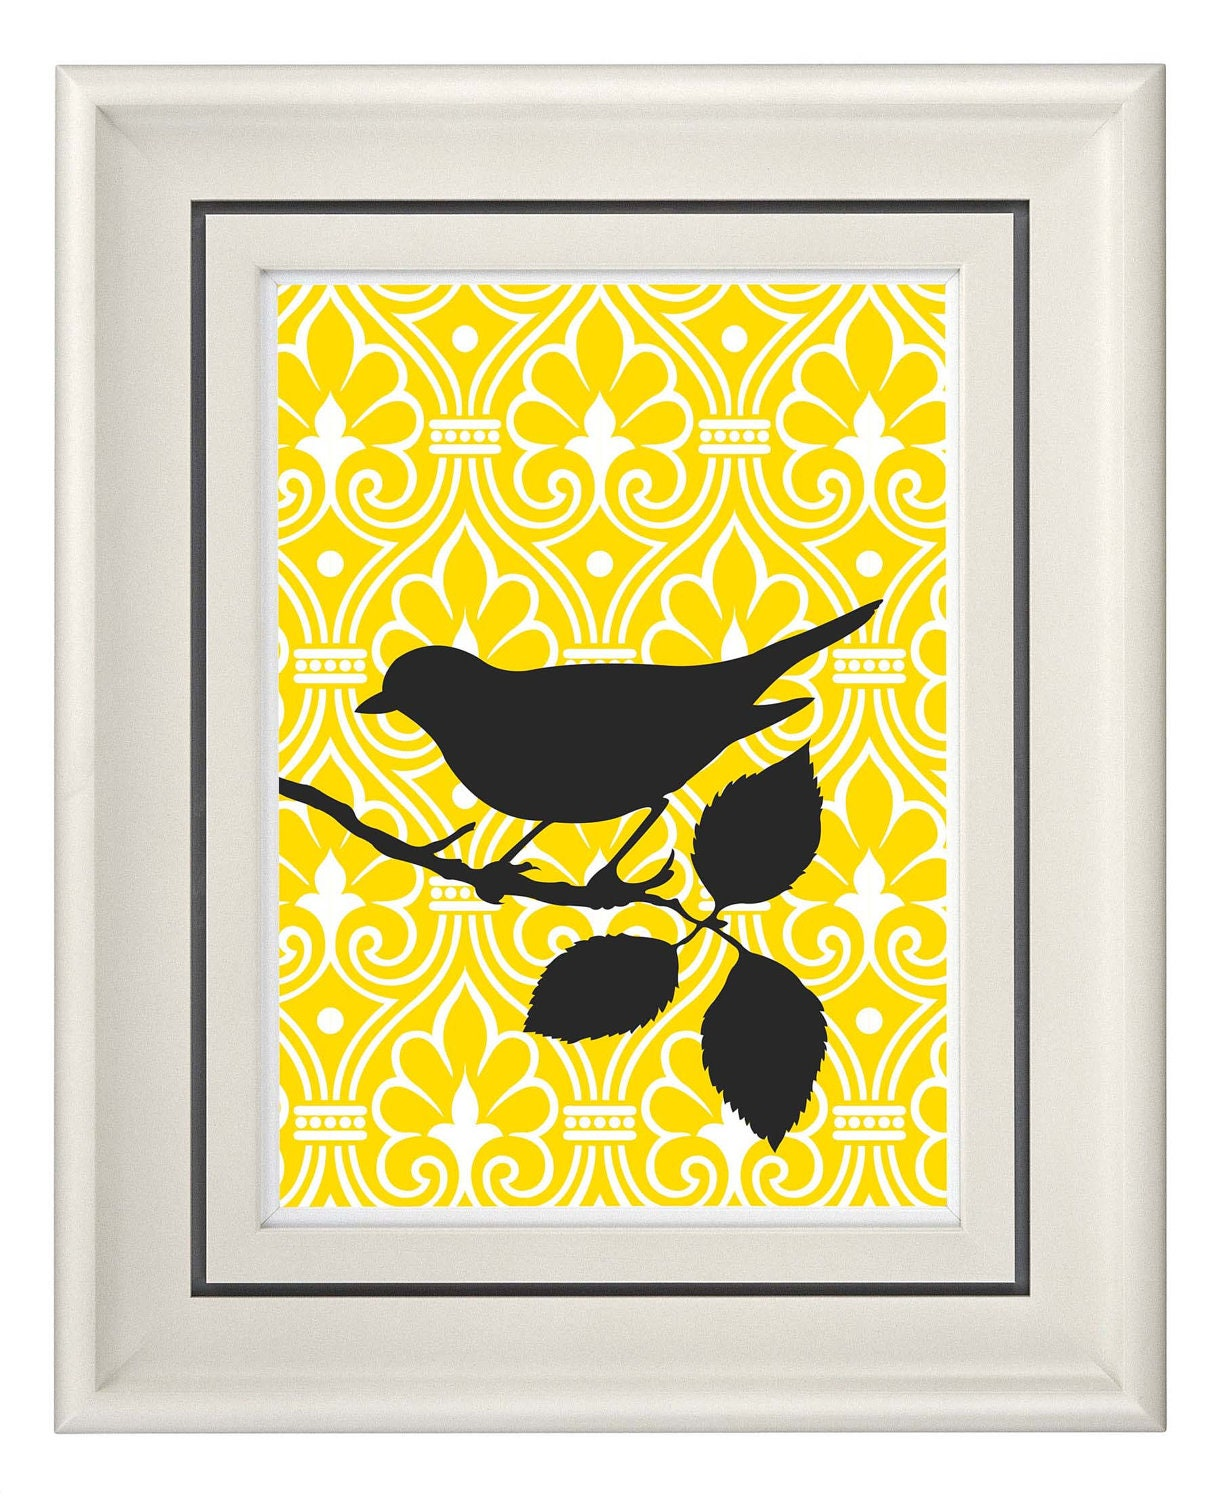 Modern vintage yellow bird wall art home decor unframed for Bird wall art